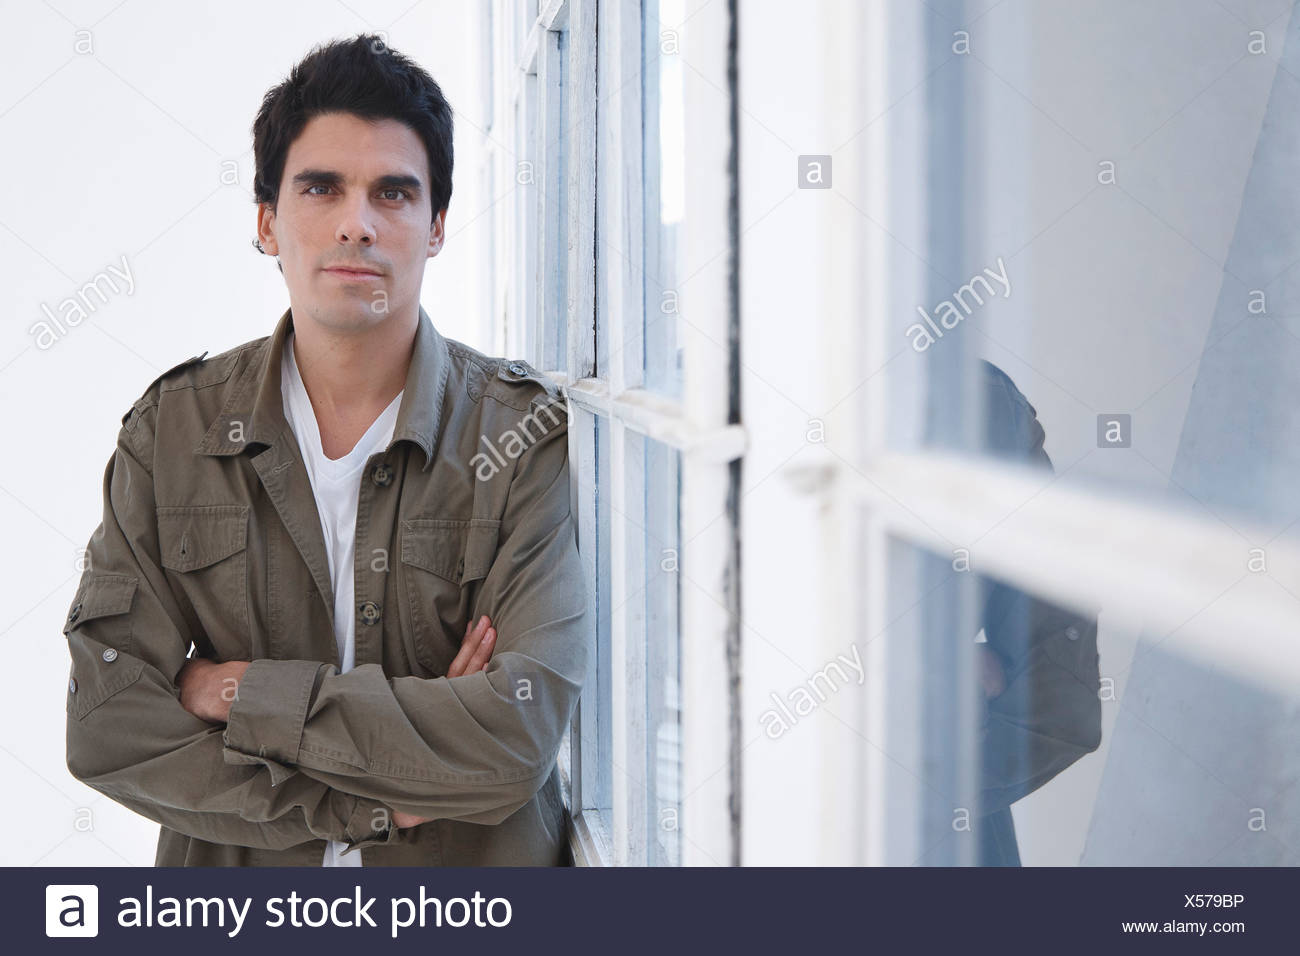 Portrait of a man, arms crossed - Stock Image